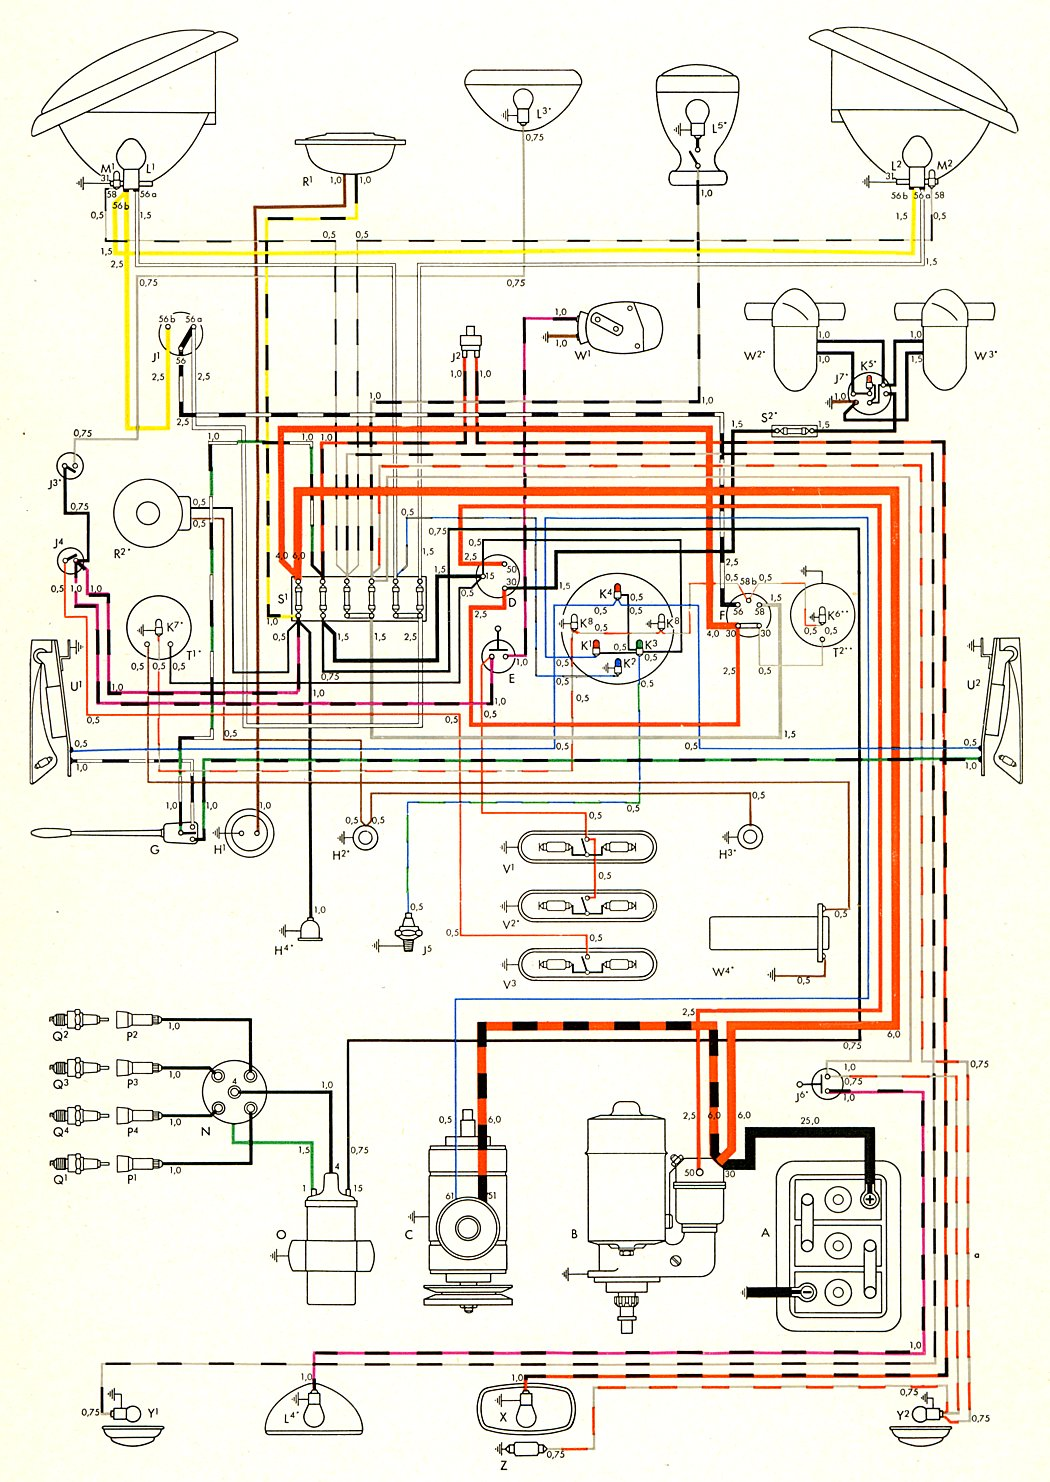 bus_nov57 1957 bus wiring diagram thegoldenbug com 1971 vw bus wiring diagram at love-stories.co